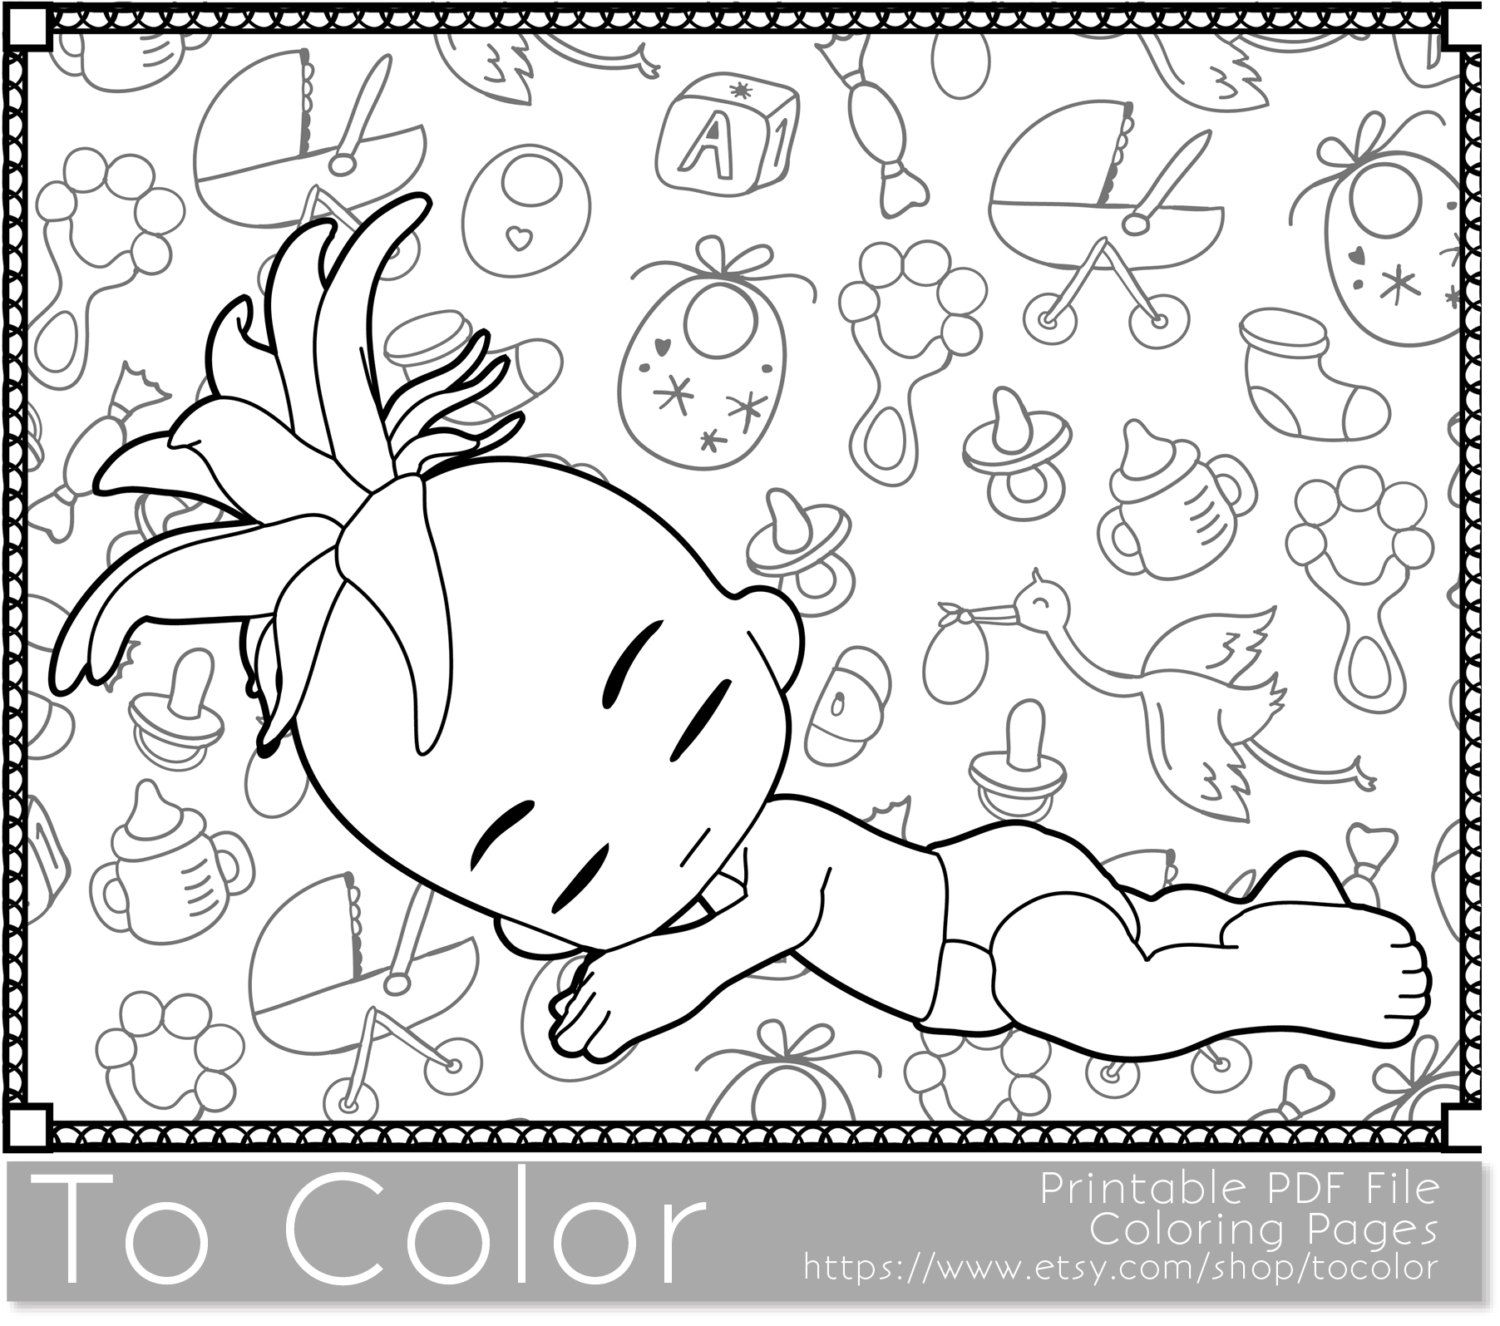 Baby Printable Coloring Pages For Adults Showers Girl PDF JPG